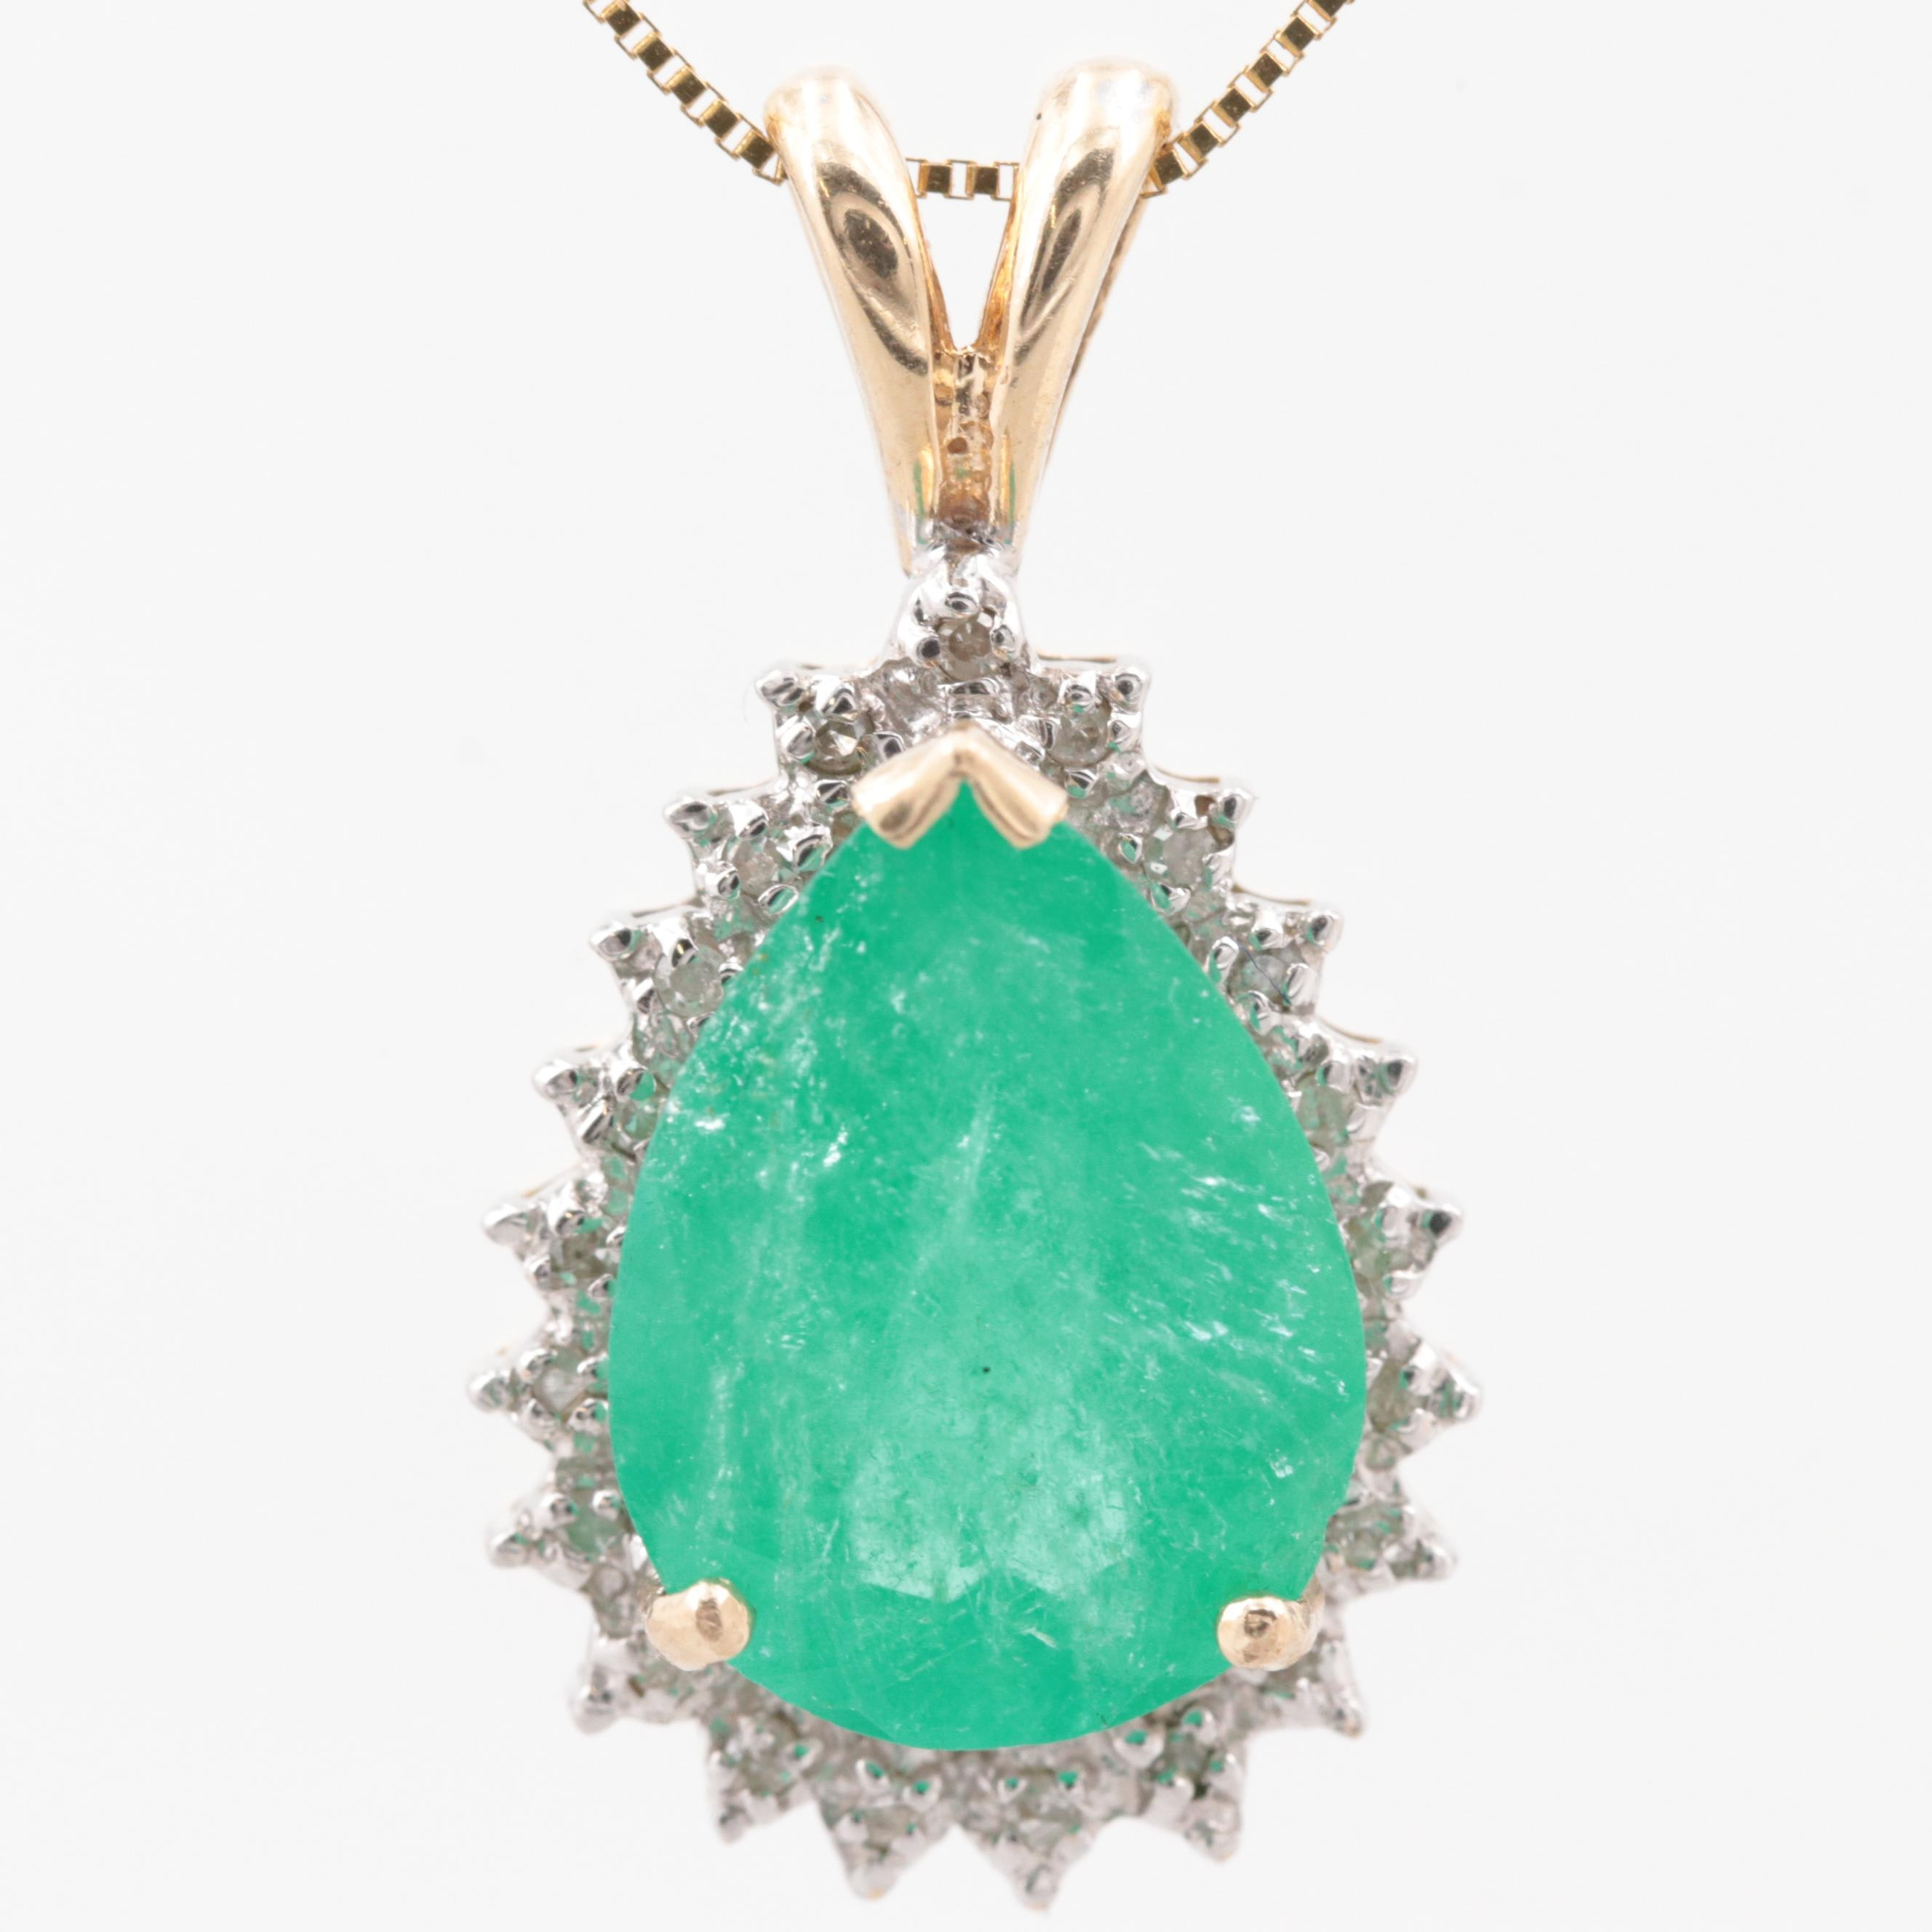 10K Yellow Gold Emerald and Diamond Pendant with 14K Yellow Gold Necklace